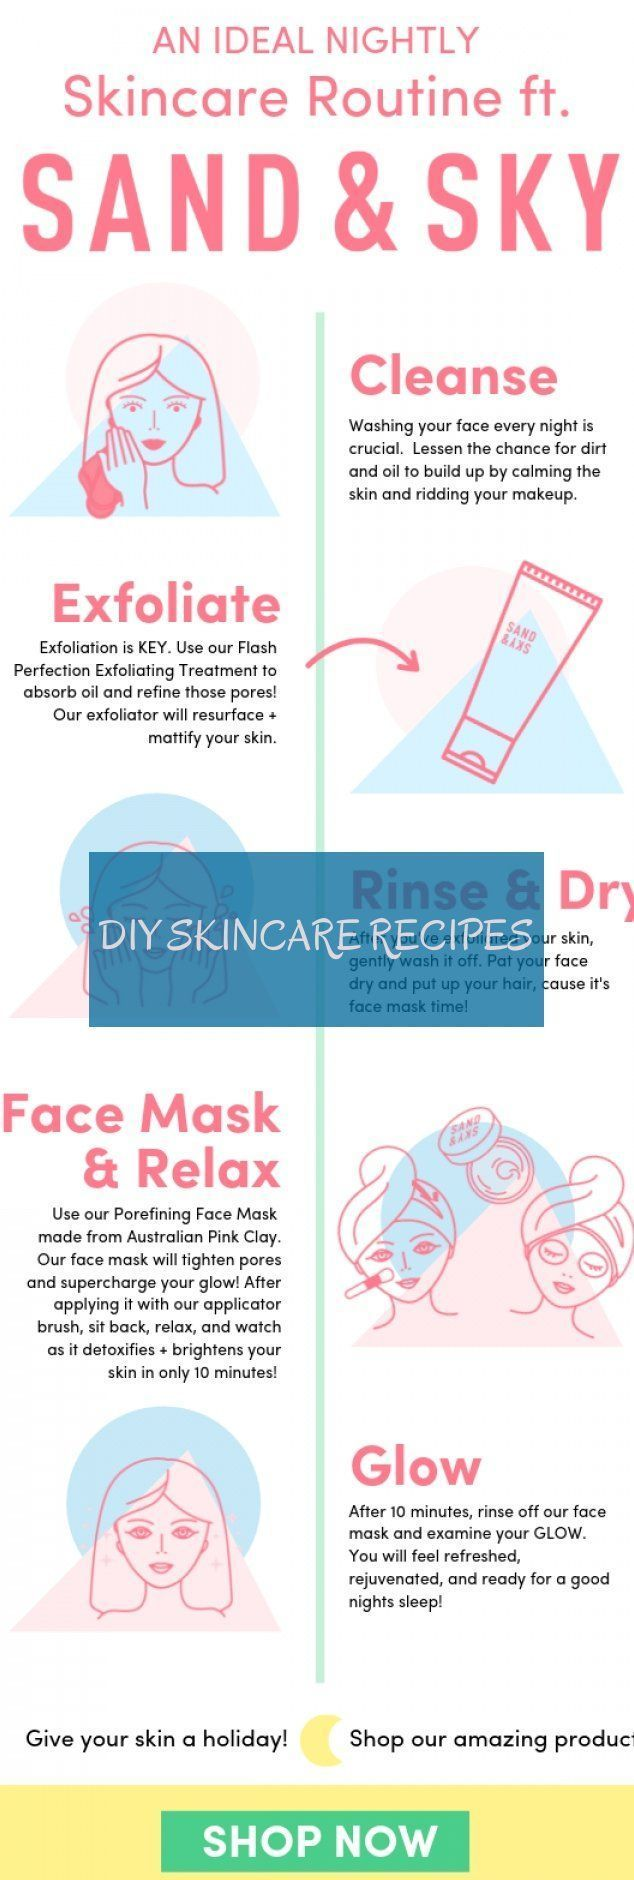 # Skincare Recipes - DIY Skincare Recipes # DIY Skincare Recipes - Papercraft Supplies  -  Hautpflege-Rezepte